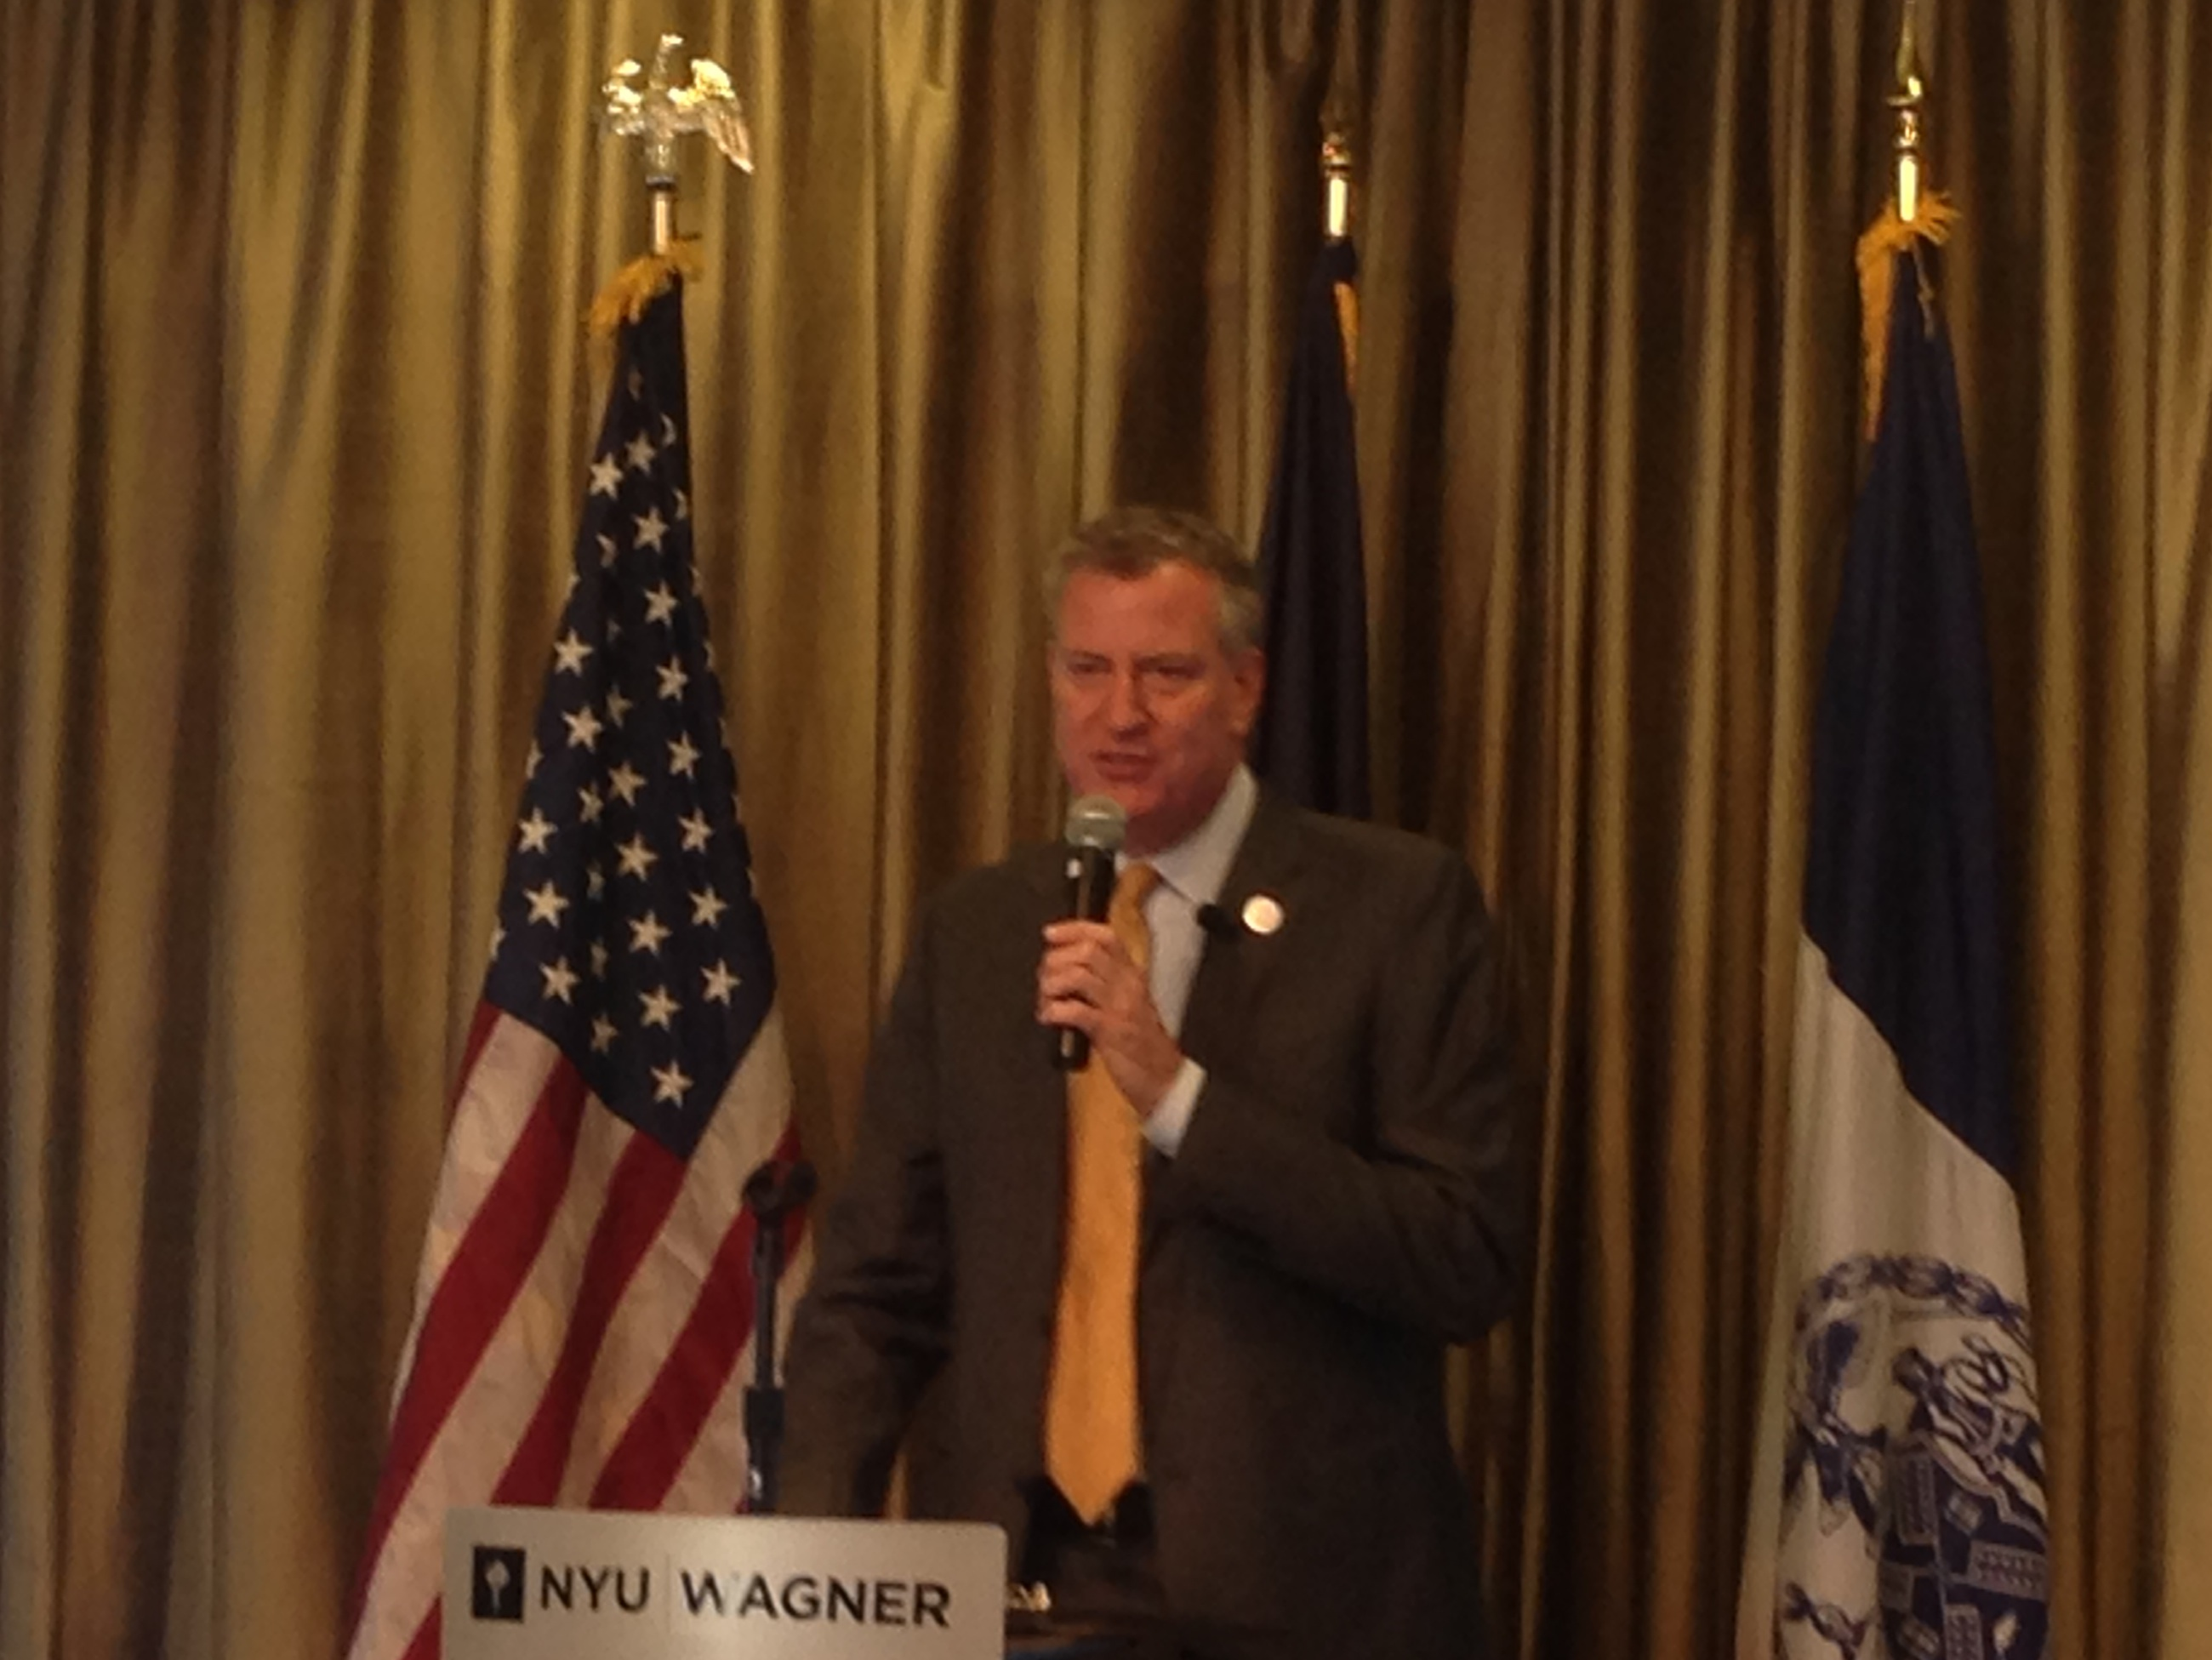 Mayor Bill de Blasio gathered an advisory board Thursday to begin planning how to launch 100 community schools during his first term.